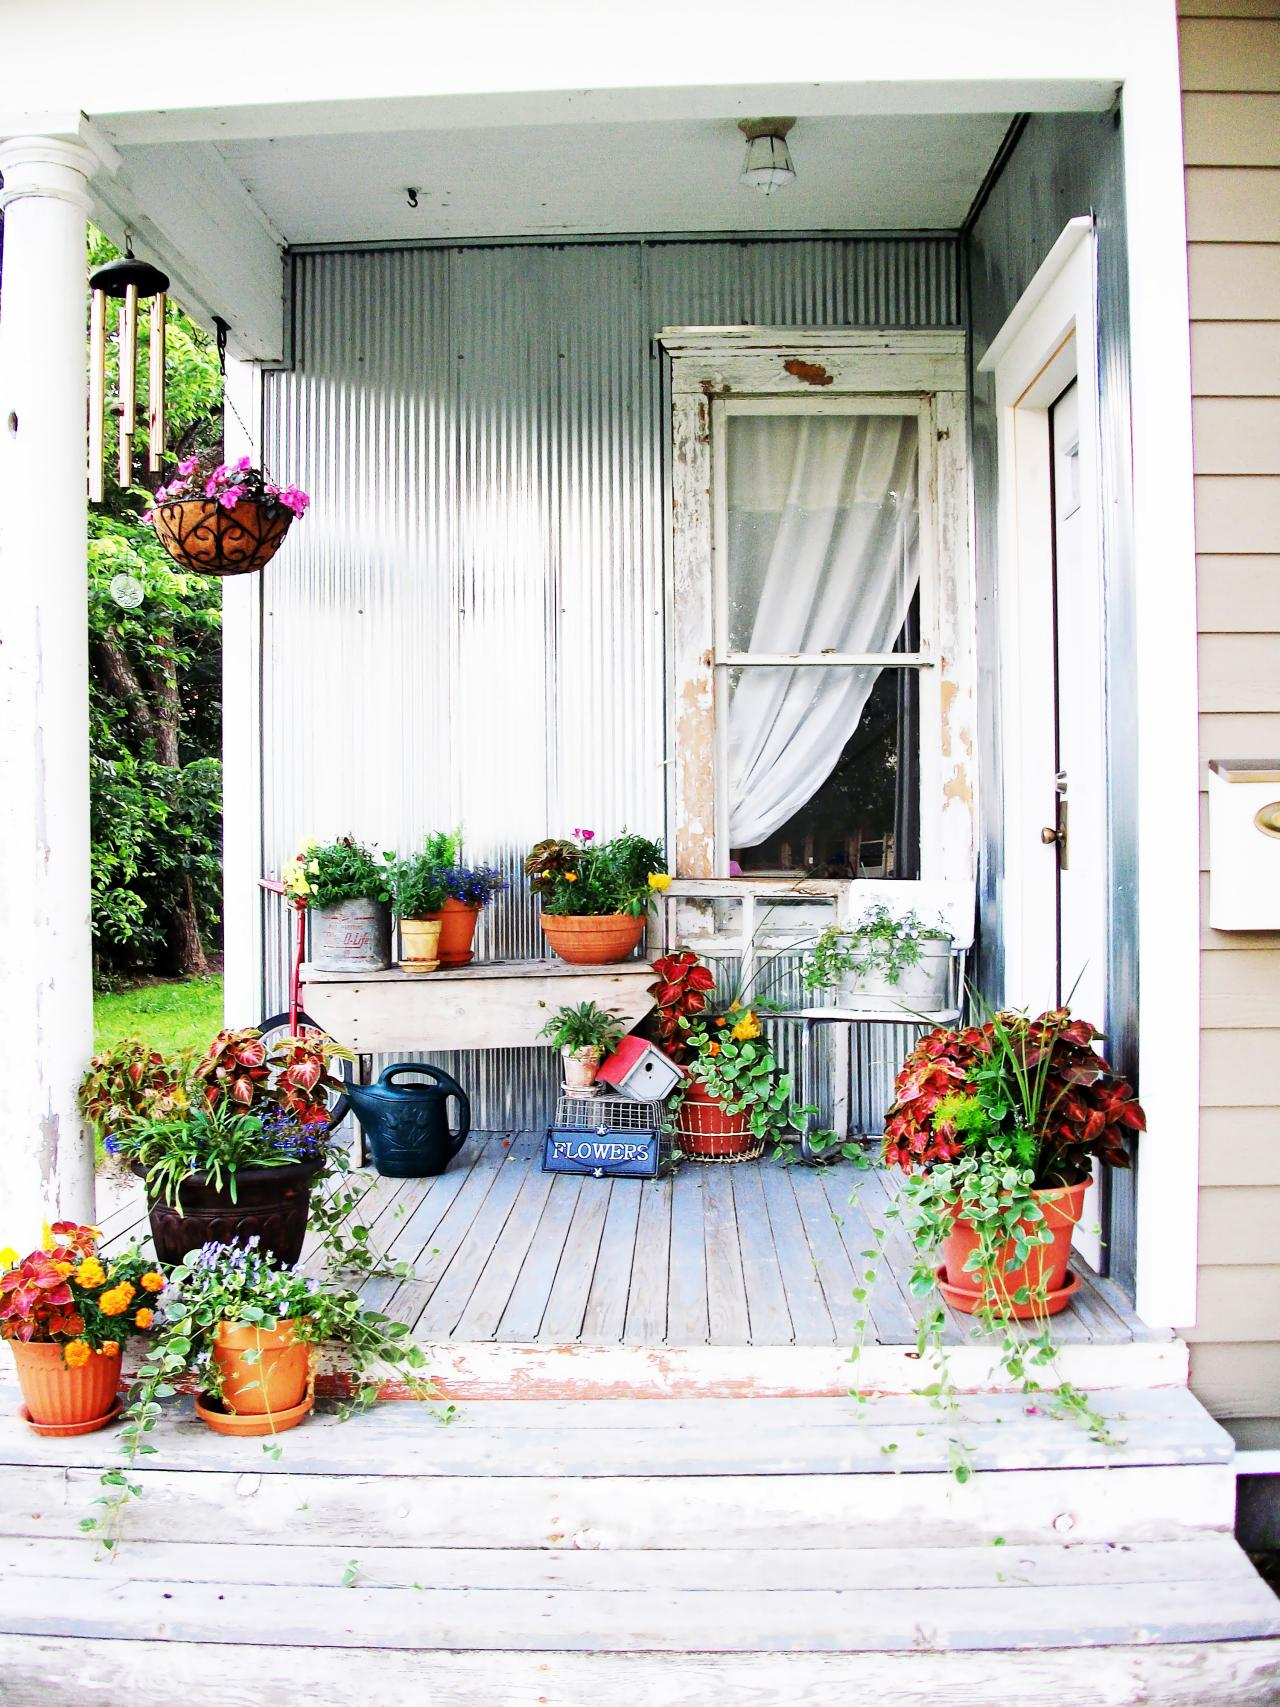 RMS-robinelise_shabby-porch-container-garden_s3x4.jpg.rend.hgtvcom.1280.1707